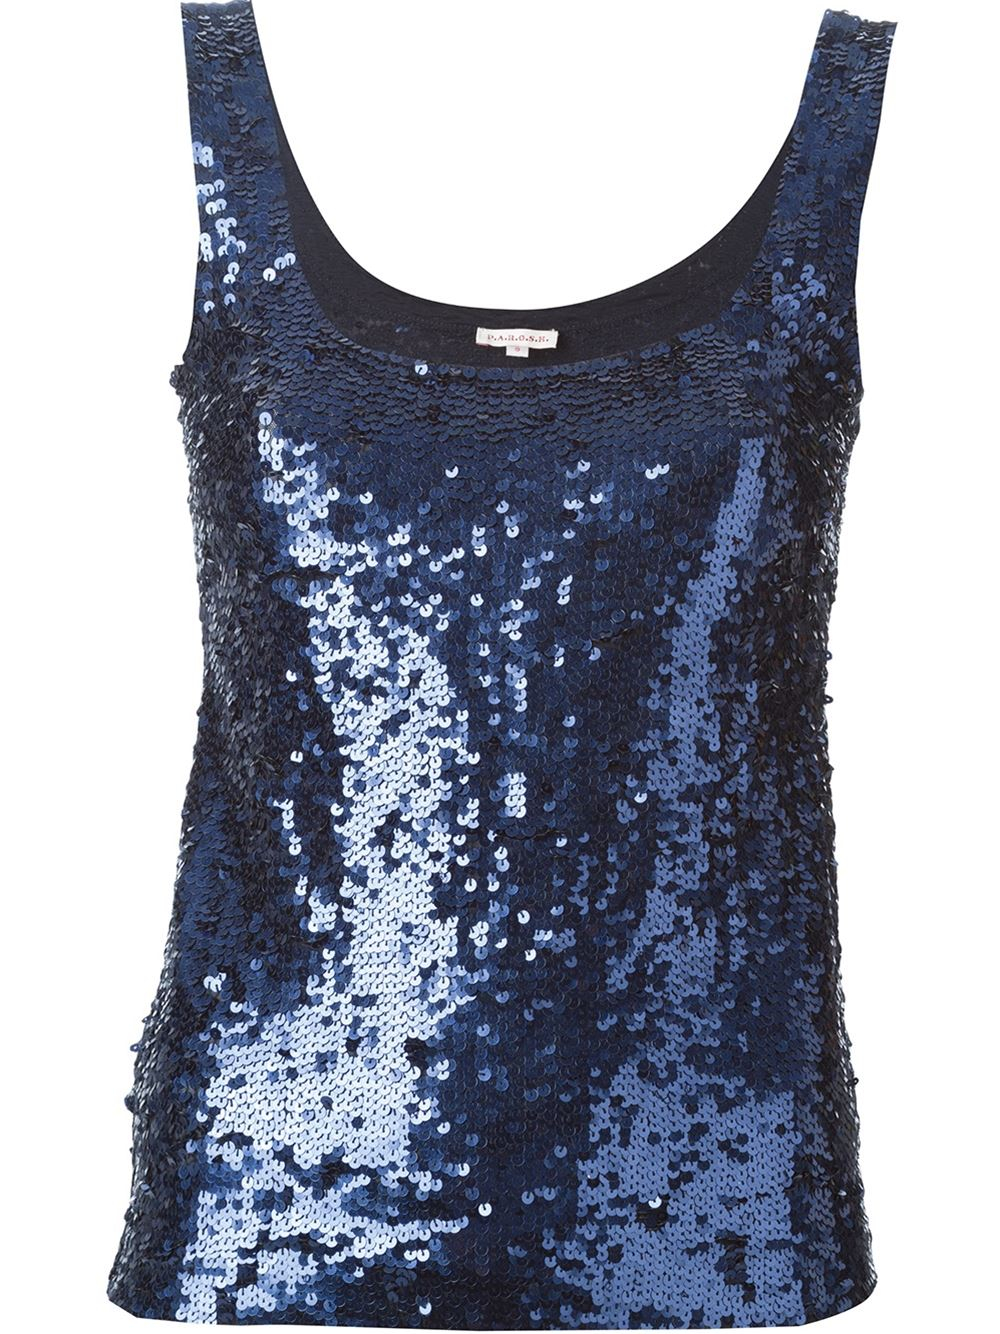 This classic, Ultra Sparkle sequin tank top features a scoop neckline and wide, bra-friendly straps. All sizes are fully lined; adult sizes have shelf bra for added support. Imported. Fabric: Polyester/Spandex. New color available! Now in Electric Purple.